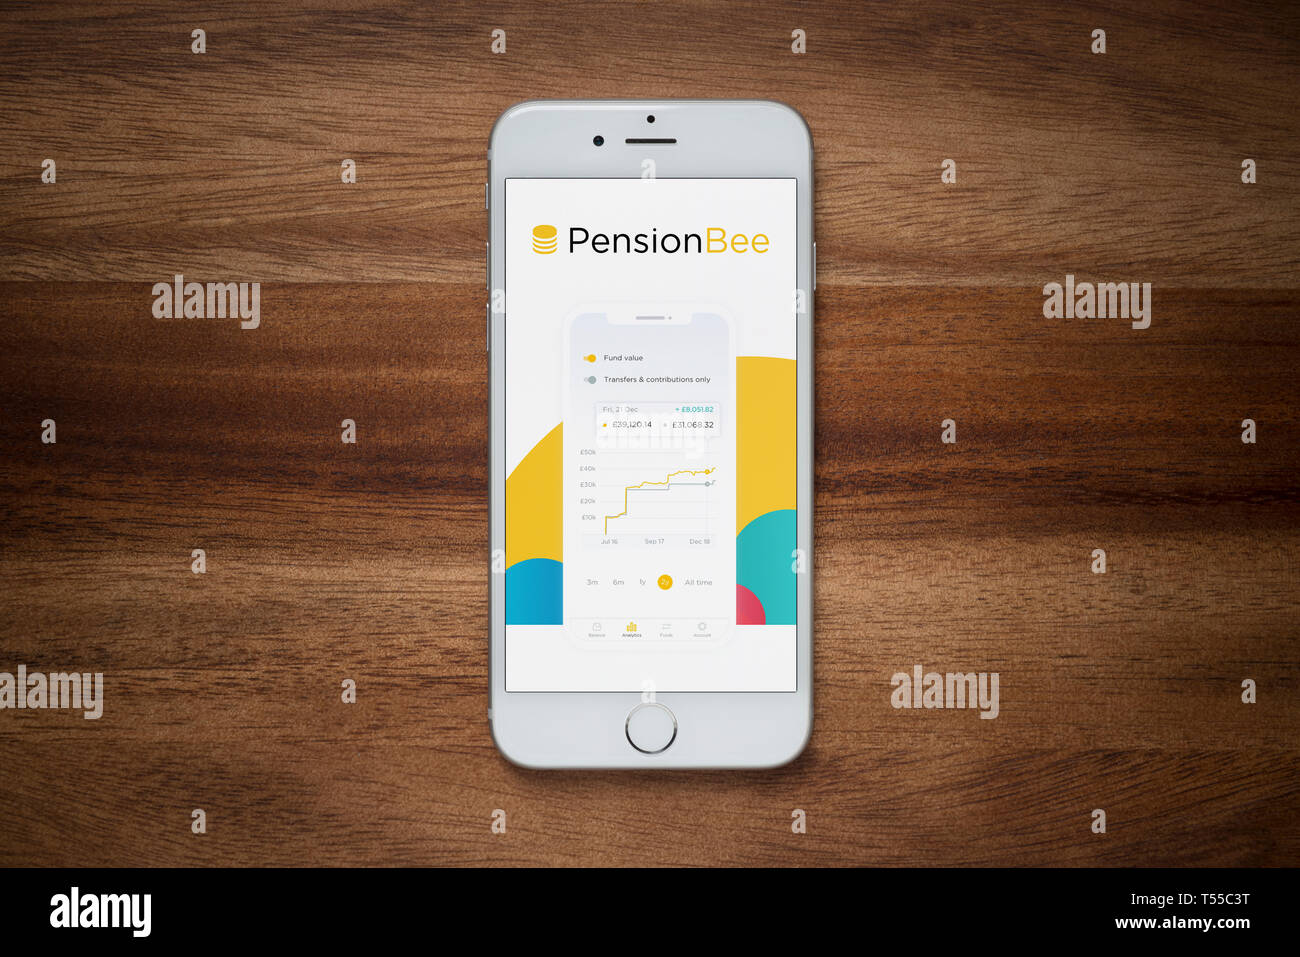 An iPhone showing the Pension Bee website rests on a plain wooden table (Editorial use only). - Stock Image